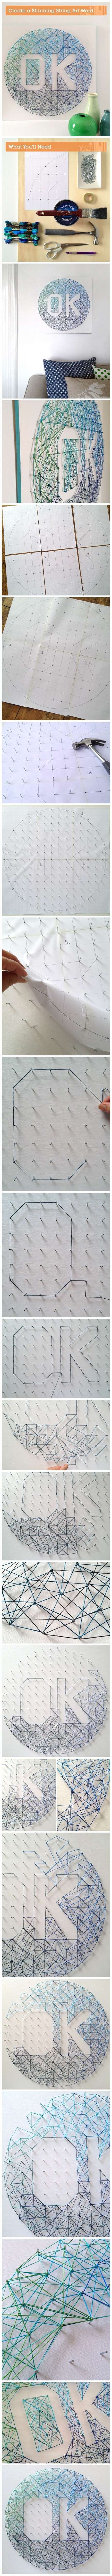 How to Diy Statemnt String Art